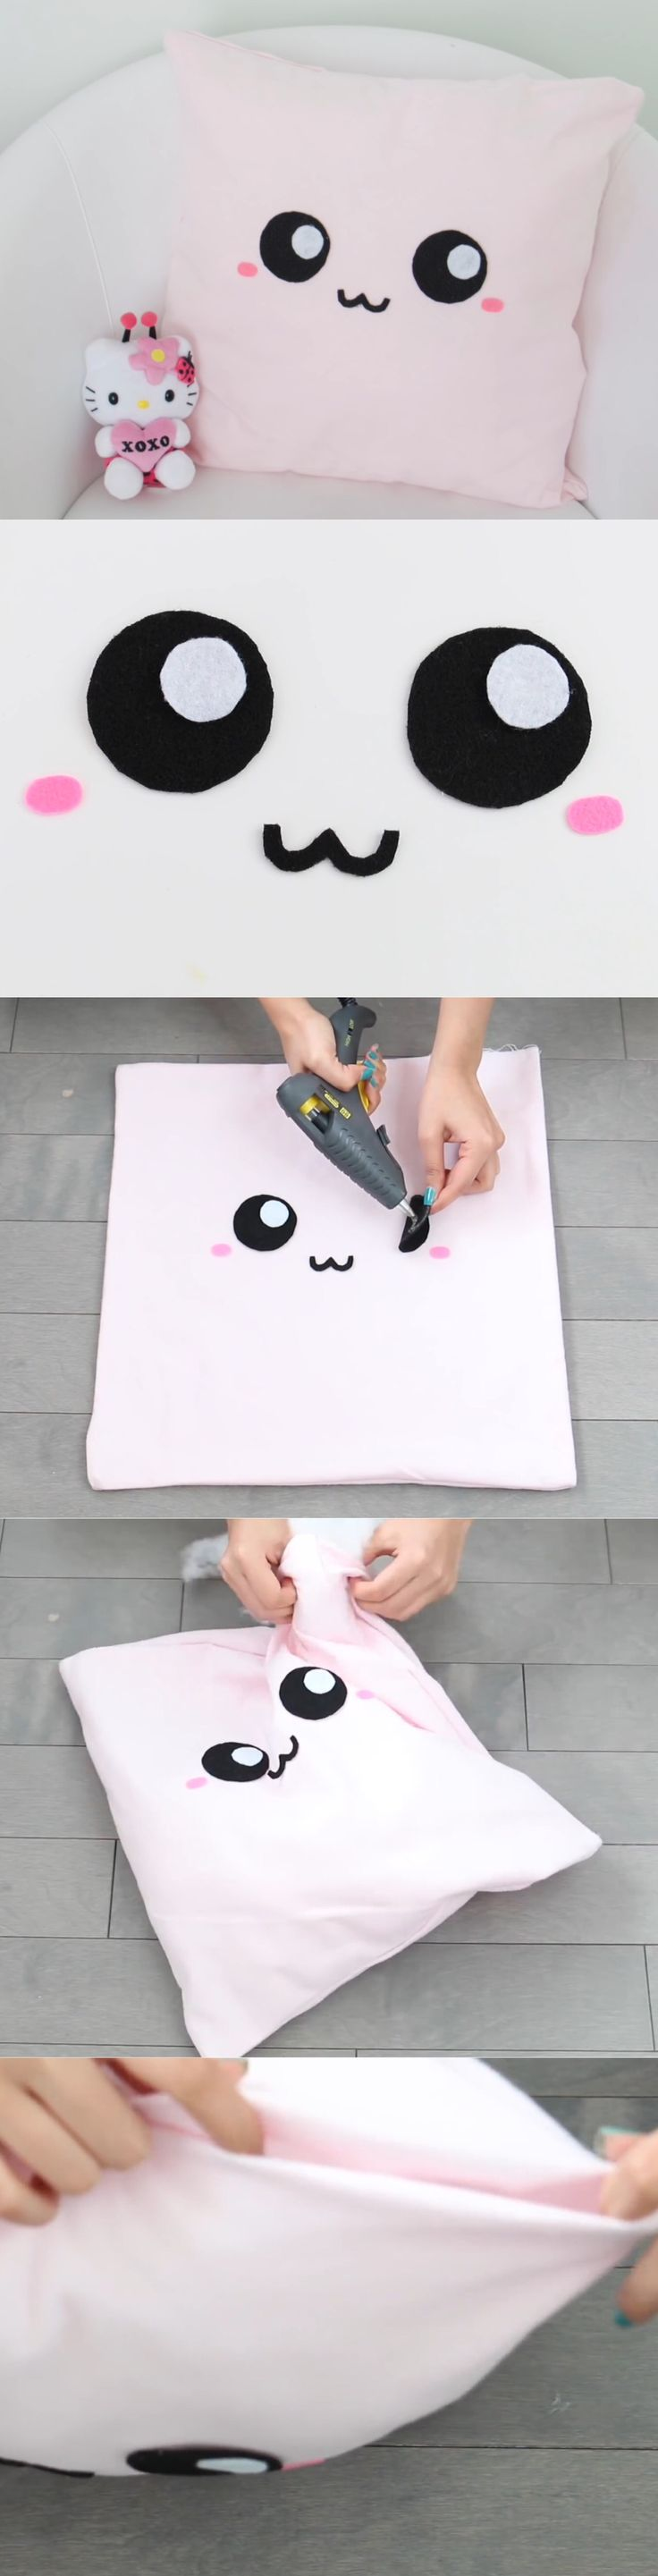 Nim C's cute face pillowcase DIY tutorial part 2. So cute!!!!